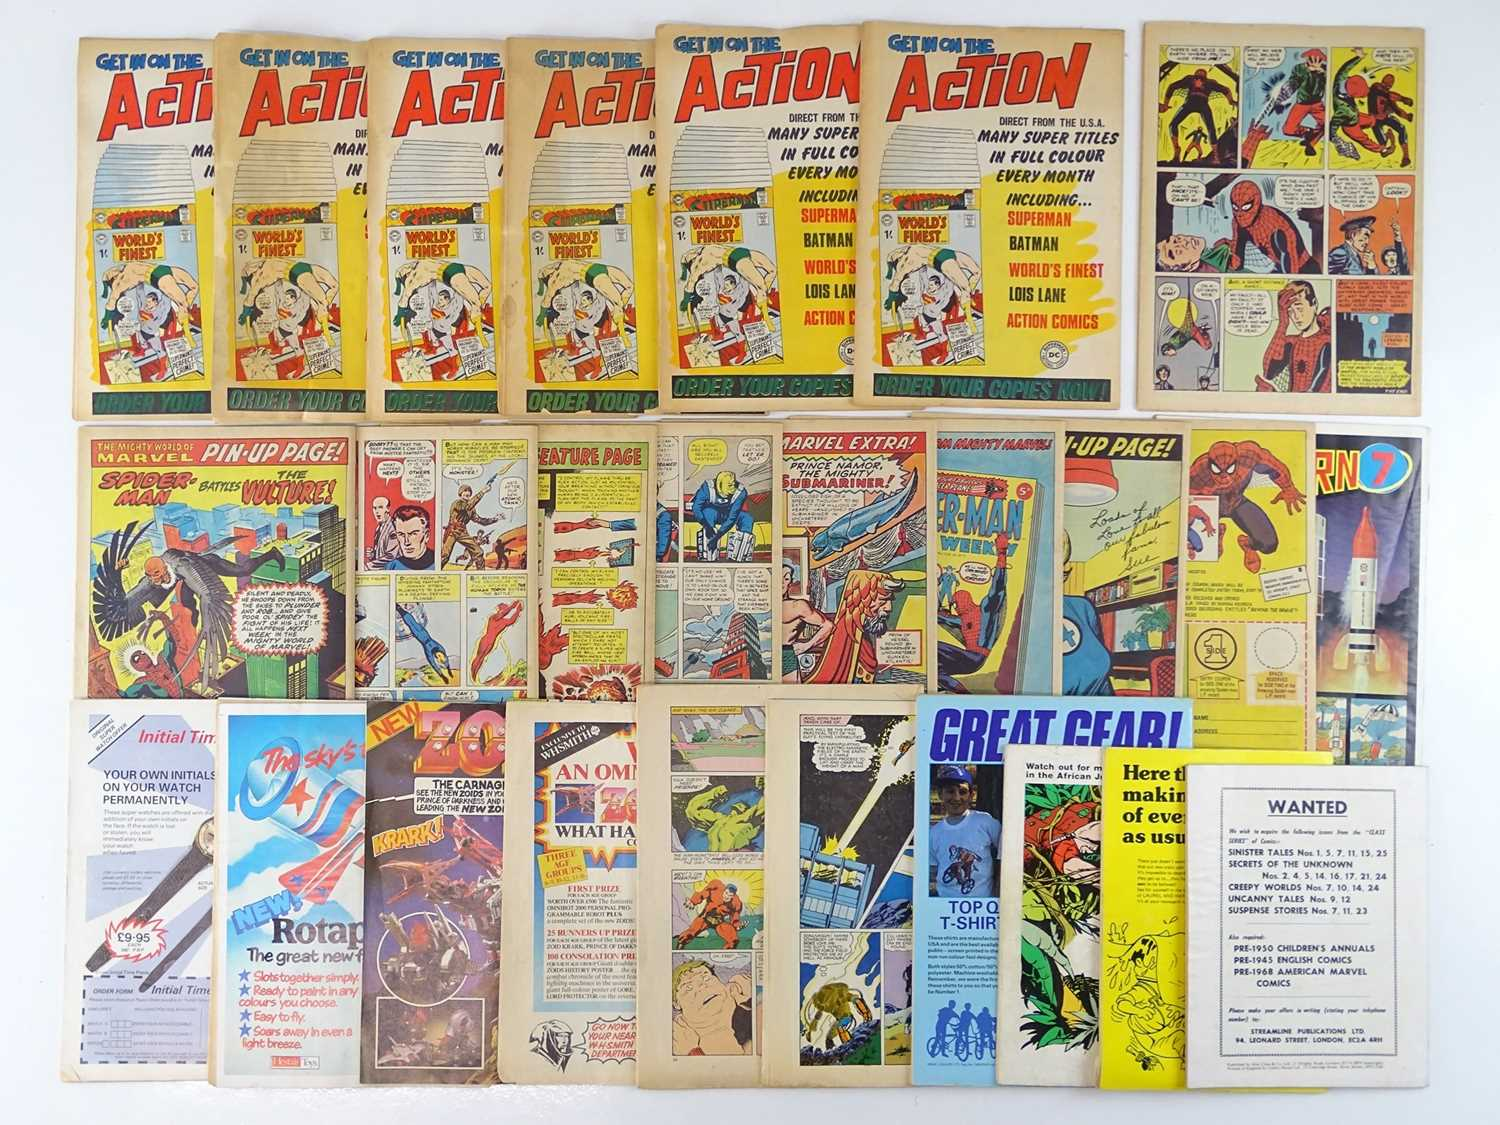 MIXED LOT OF BRITISH MARVEL, DC & OTHER COMICS - (26 in Lot) - (UK Price) - Includes BEST OF DC - Image 2 of 2